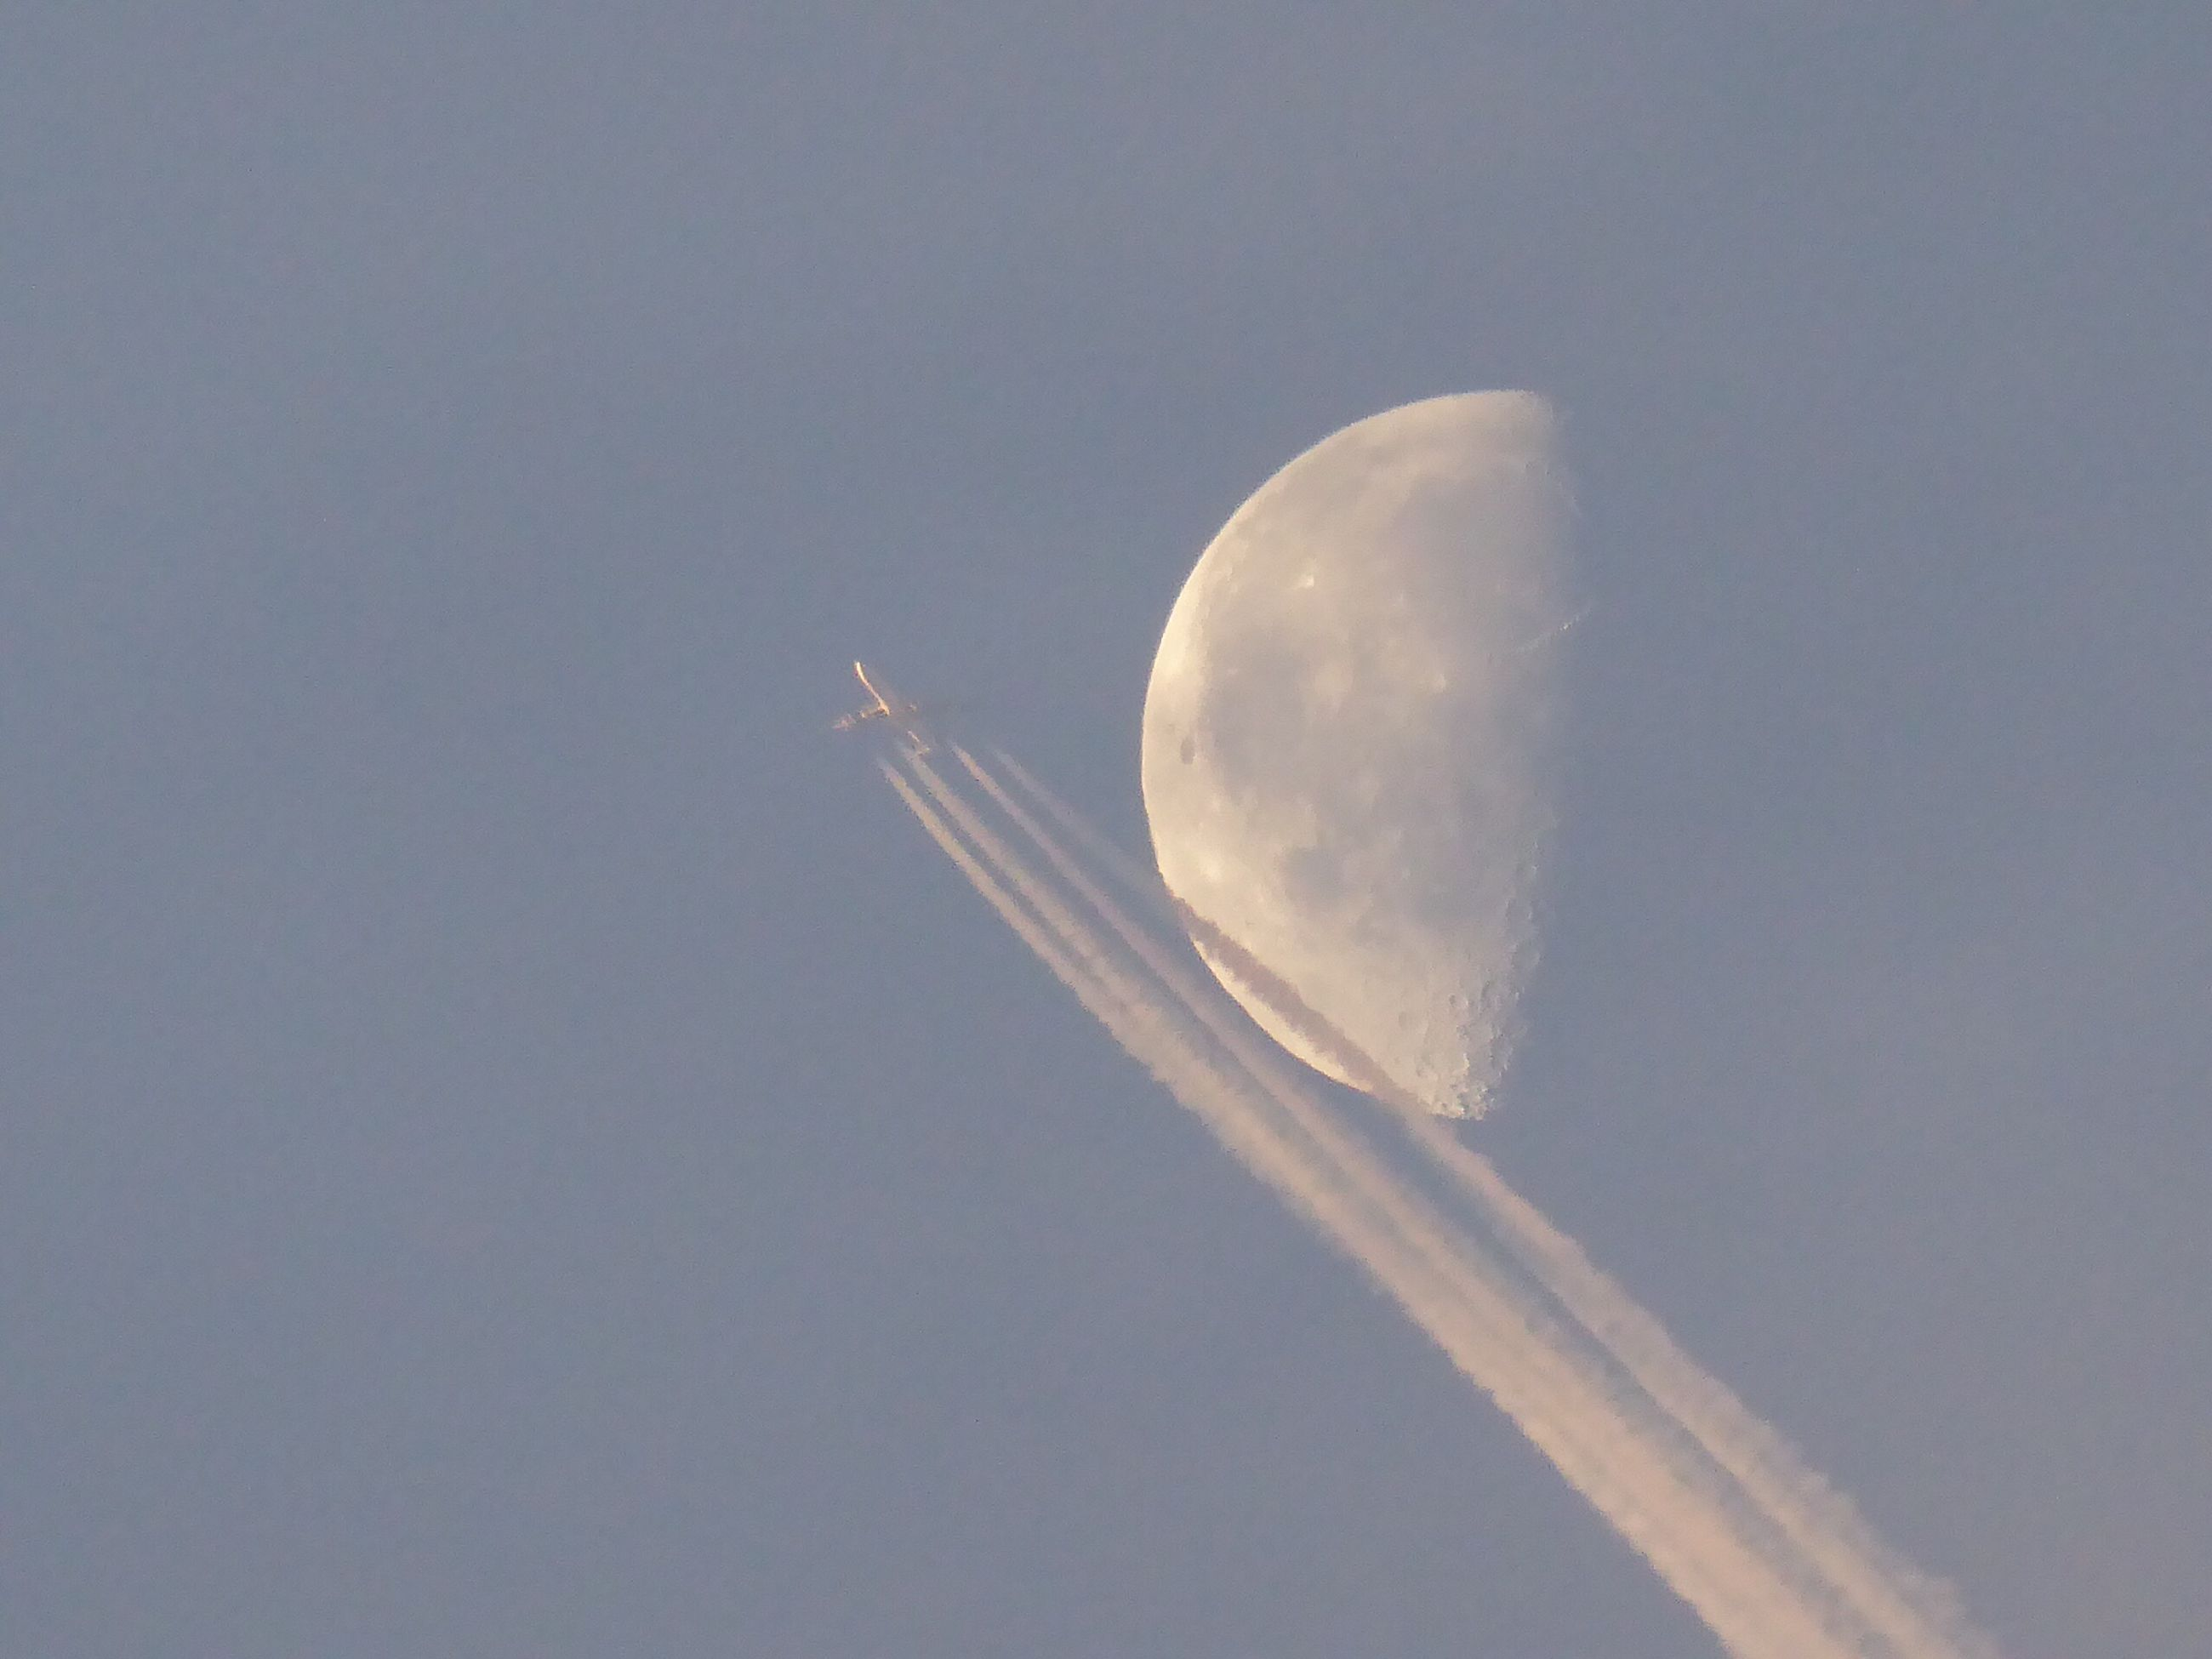 flying, low angle view, airplane, no people, clear sky, transportation, nature, sky, outdoors, moon, day, beauty in nature, vapor trail, close-up, astronomy